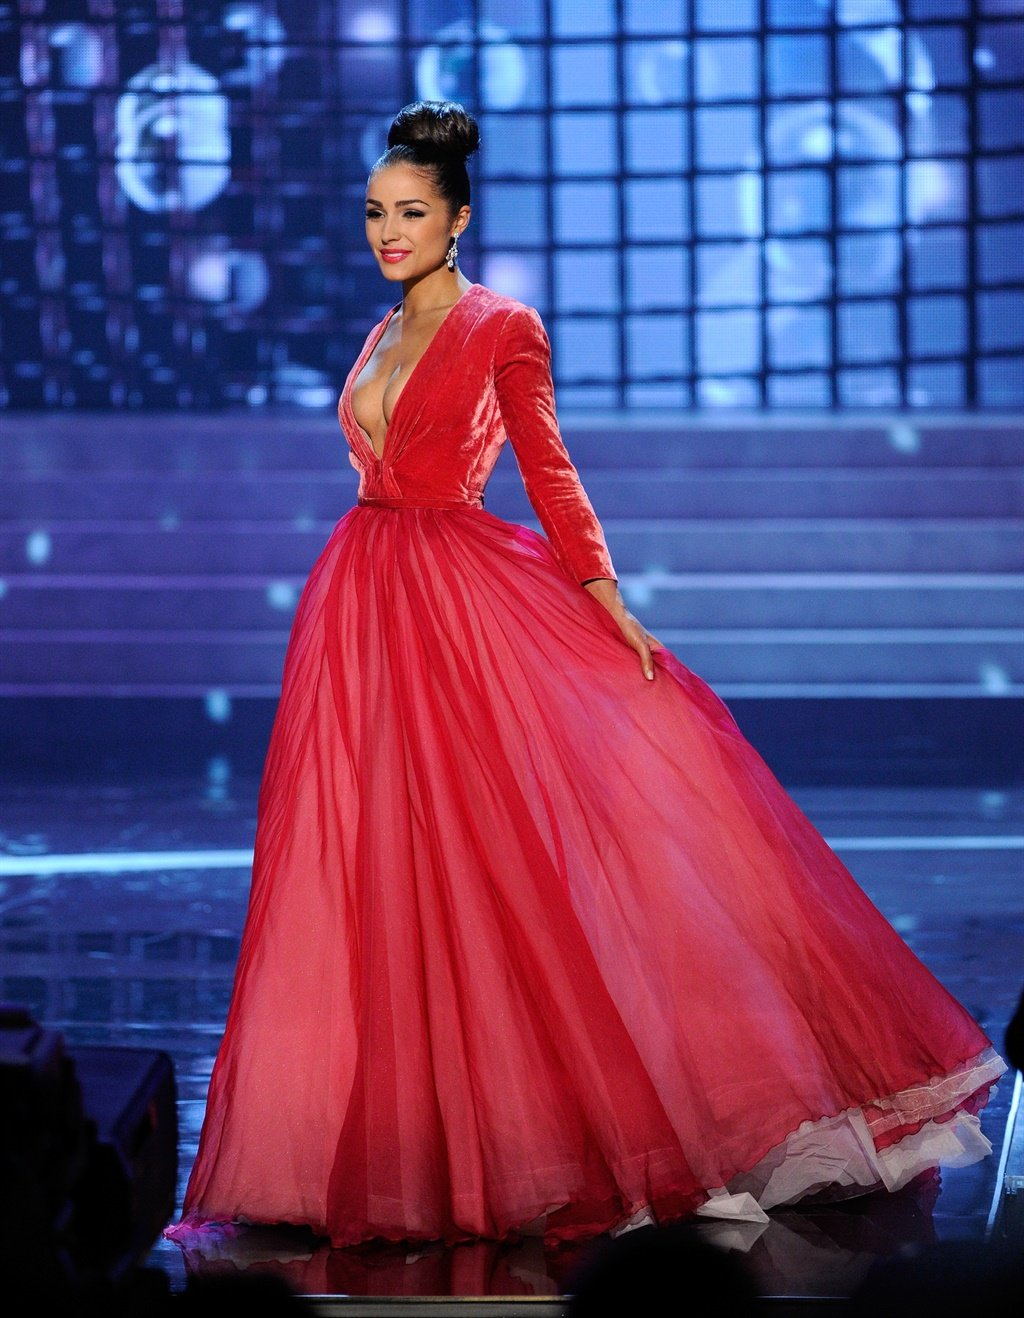 12 of the most gorgeous Miss Universe dresses of all time